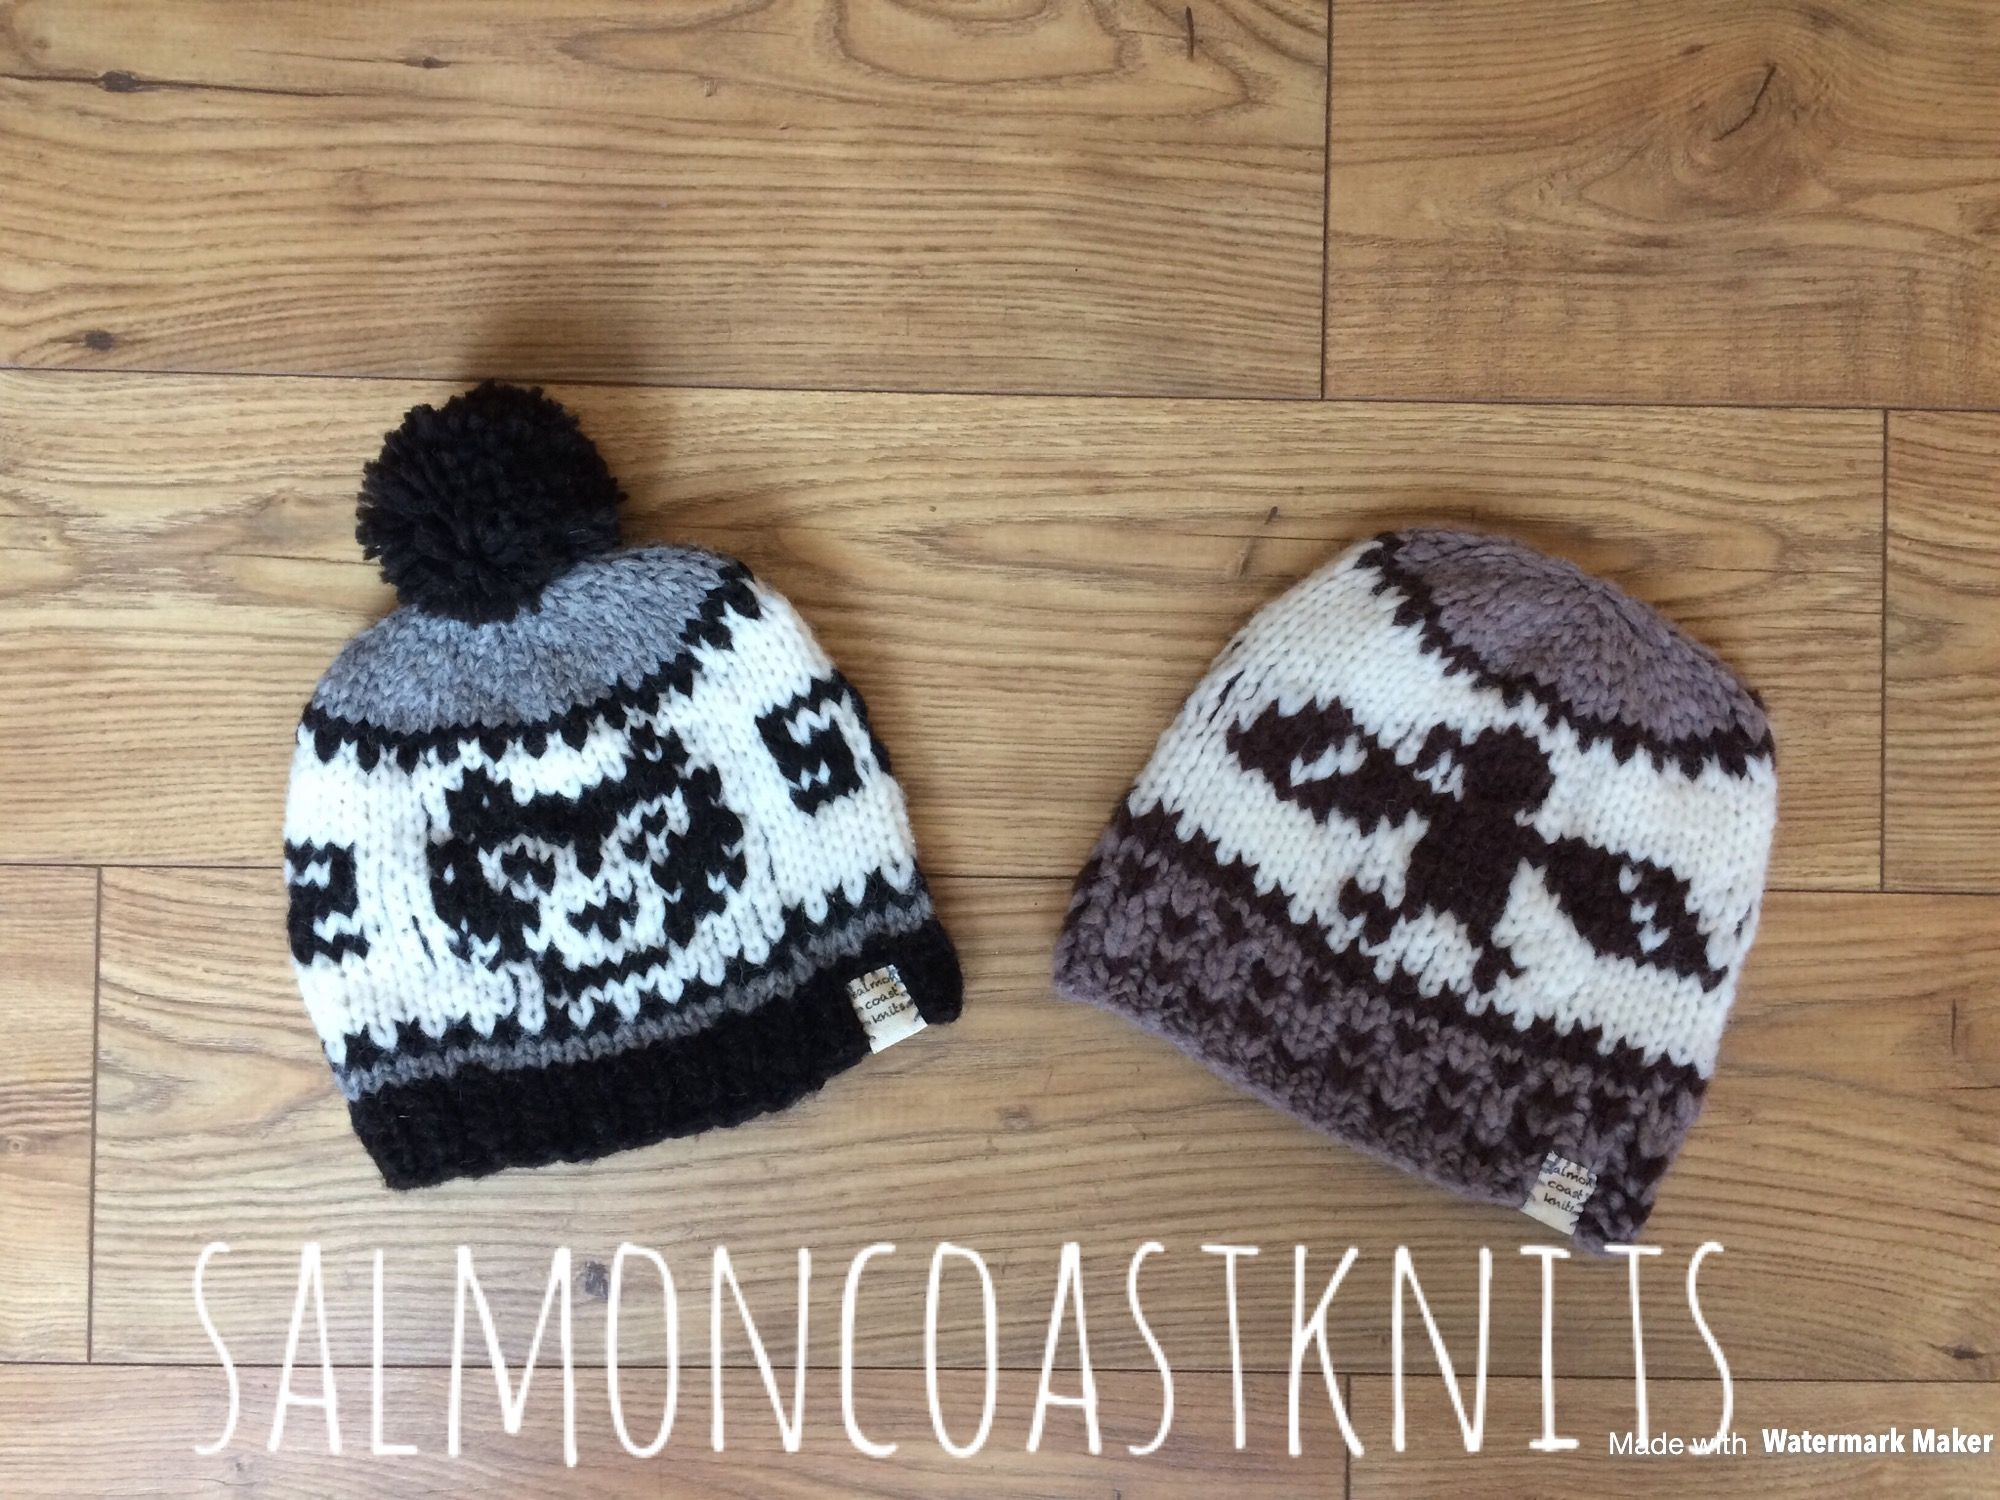 Cowichan style knitting wool hat toque wolf and eagle